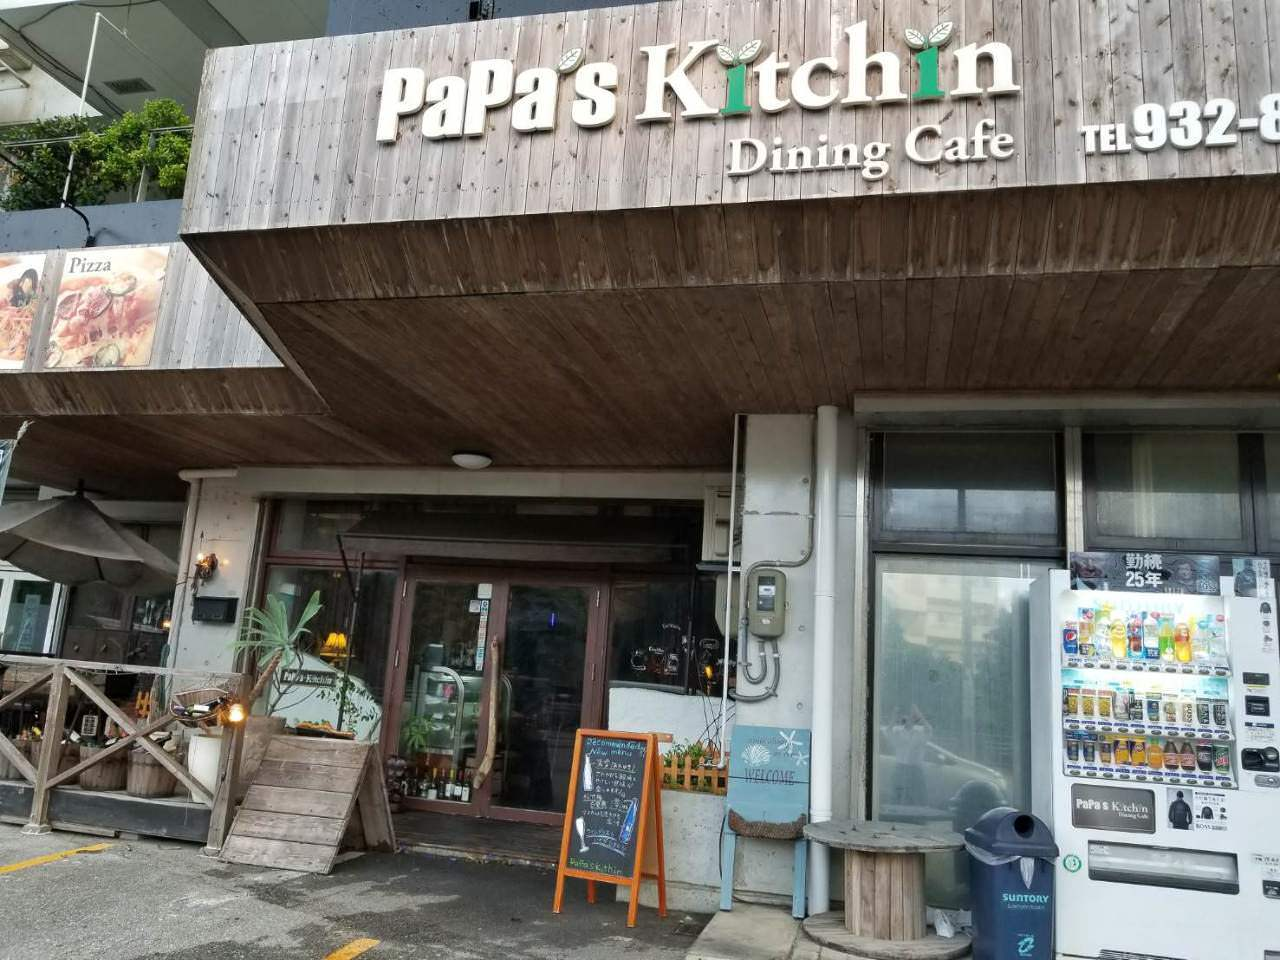 PaPa's Kitchin Dining Cafe